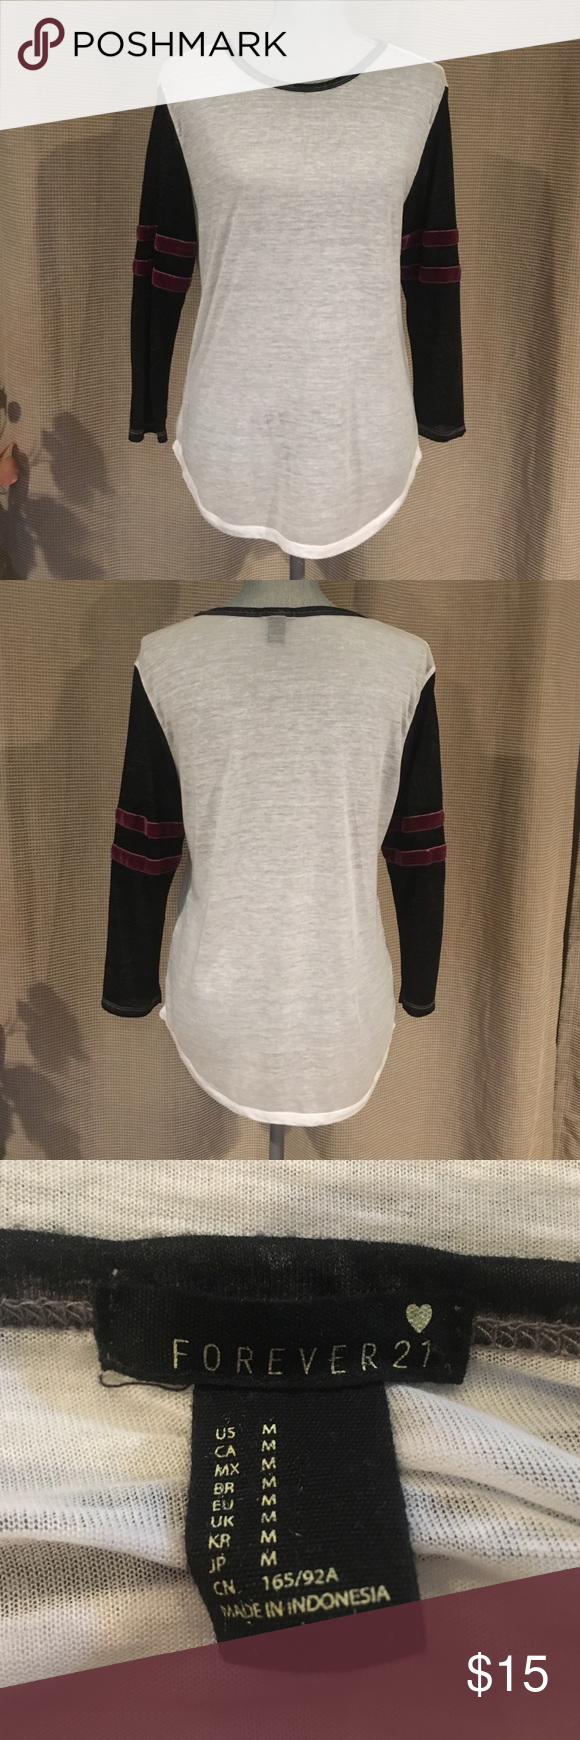 Super Soft Baseball T with Velvet Trim. Super Soft Baseball T with Velvet Trim. Designed to be slightly oversized. So comfortable & soft. Slightly Sheer. As is. Only worn once. In excellent condition. Forever 21 Tops Tees - Long Sleeve